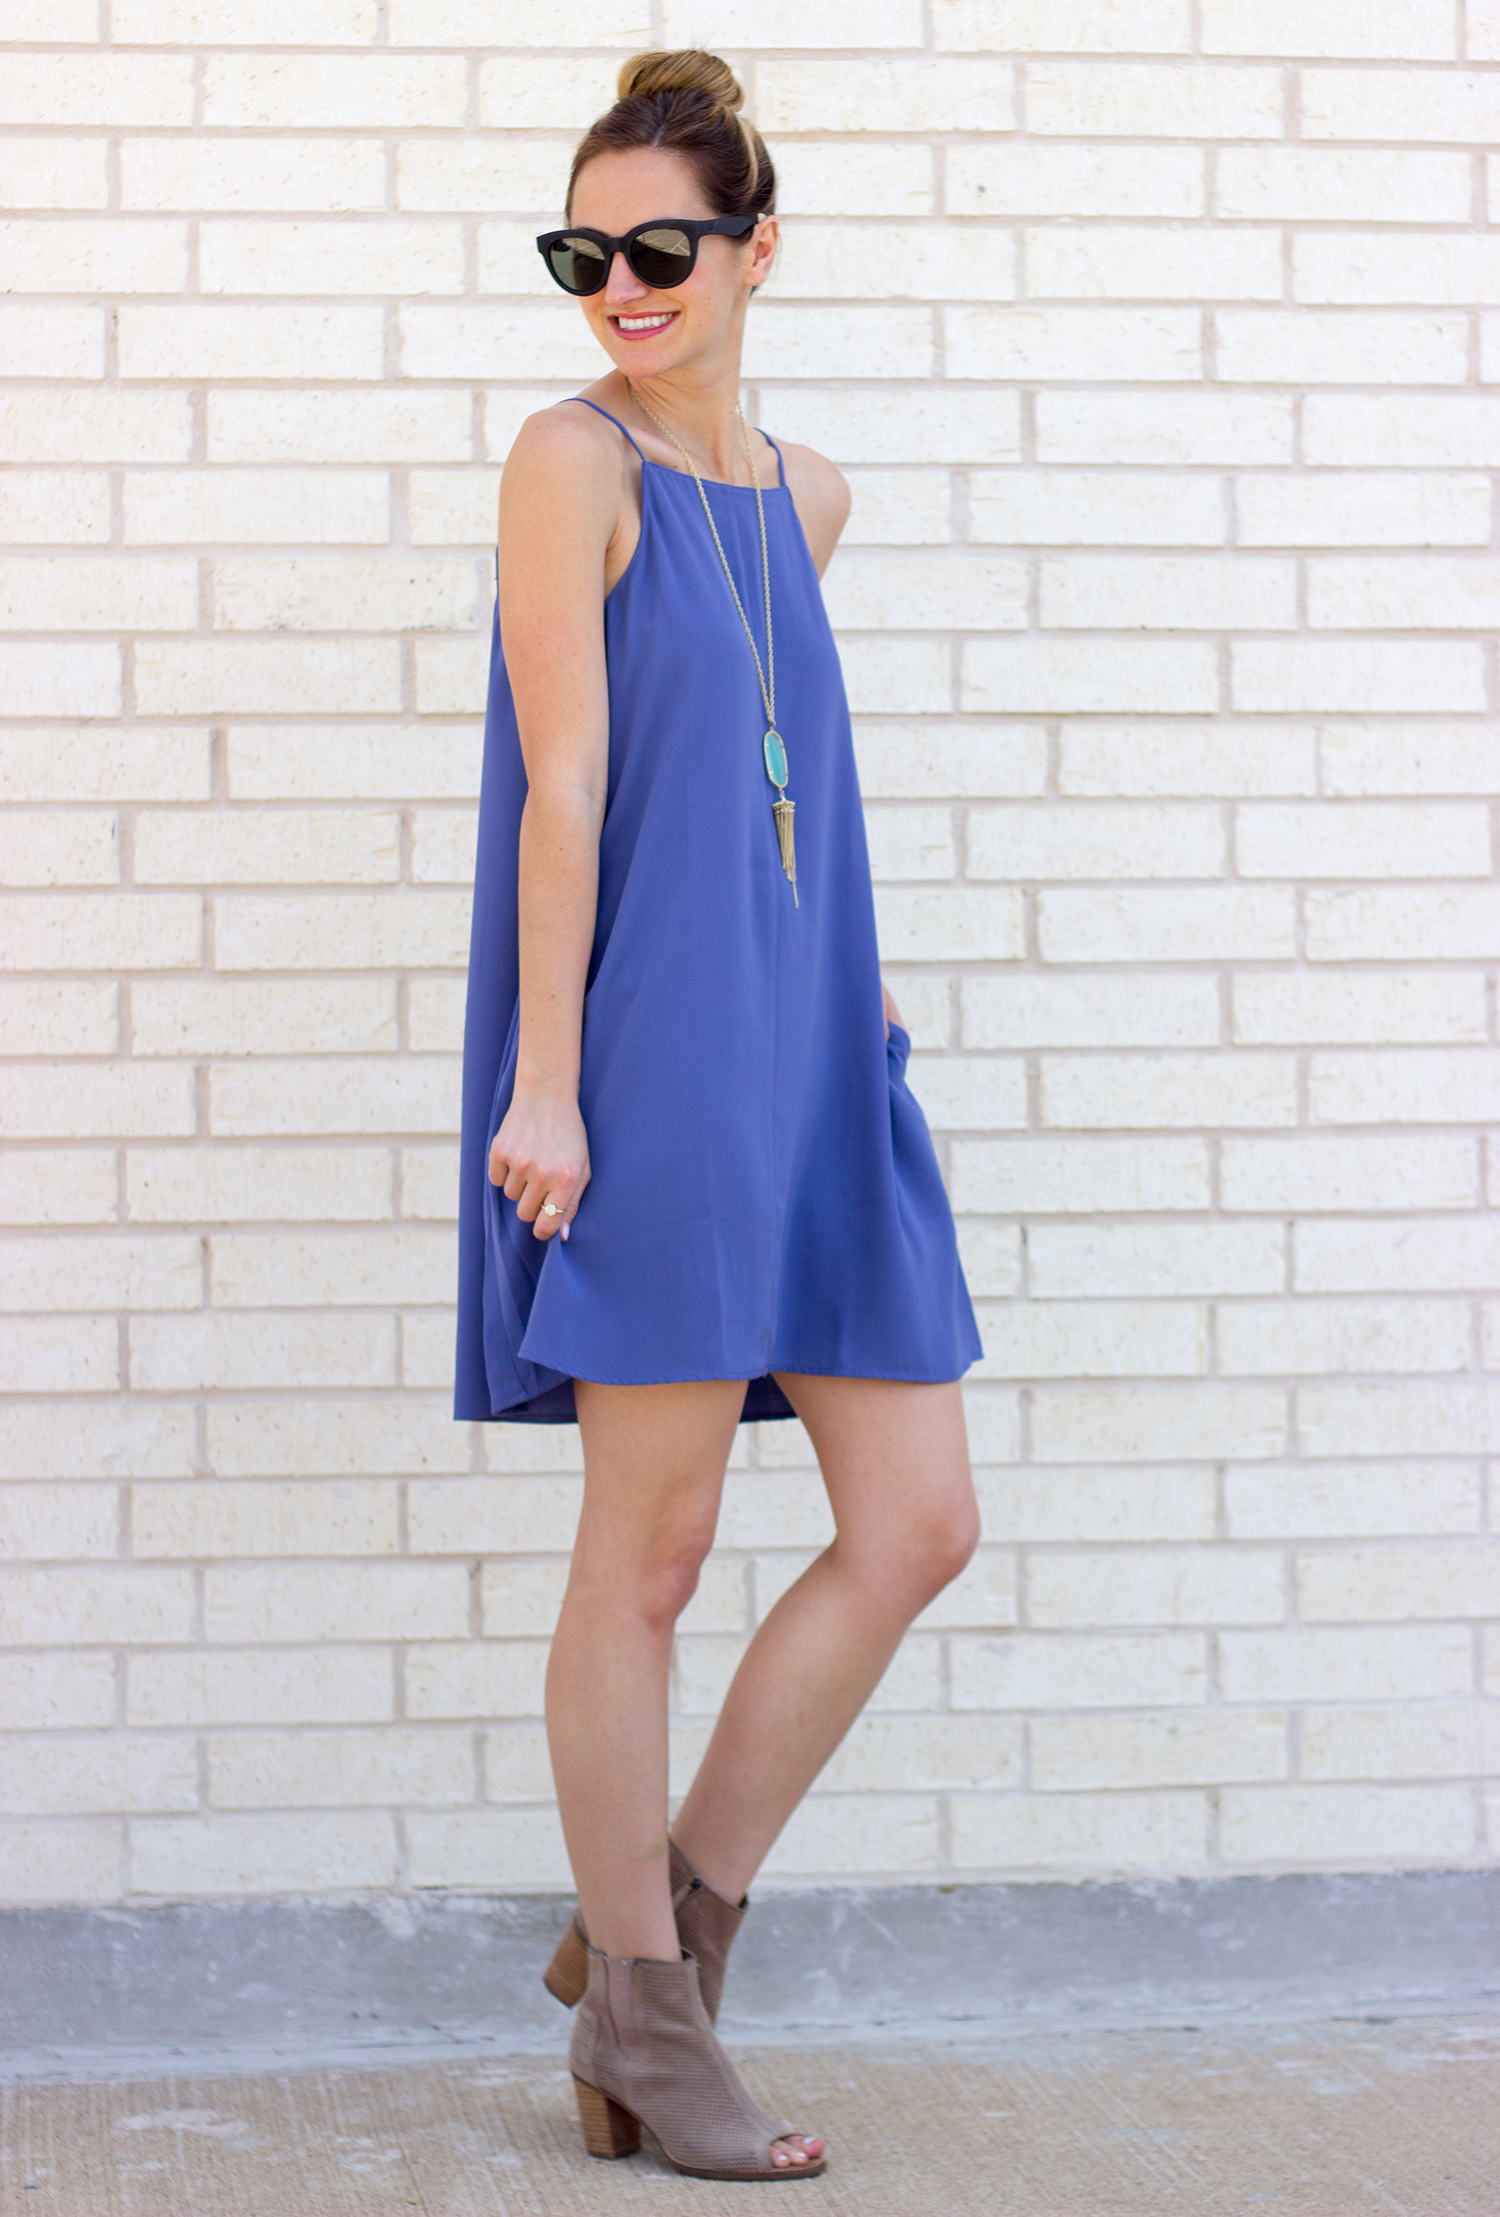 livvyland-blog-olivia-watson-austin-texas-fashion-blogger-periwinkle-spring-square-neck-shift-dress-majorca-toms-taupe-booties-spring-bright-outfit-7